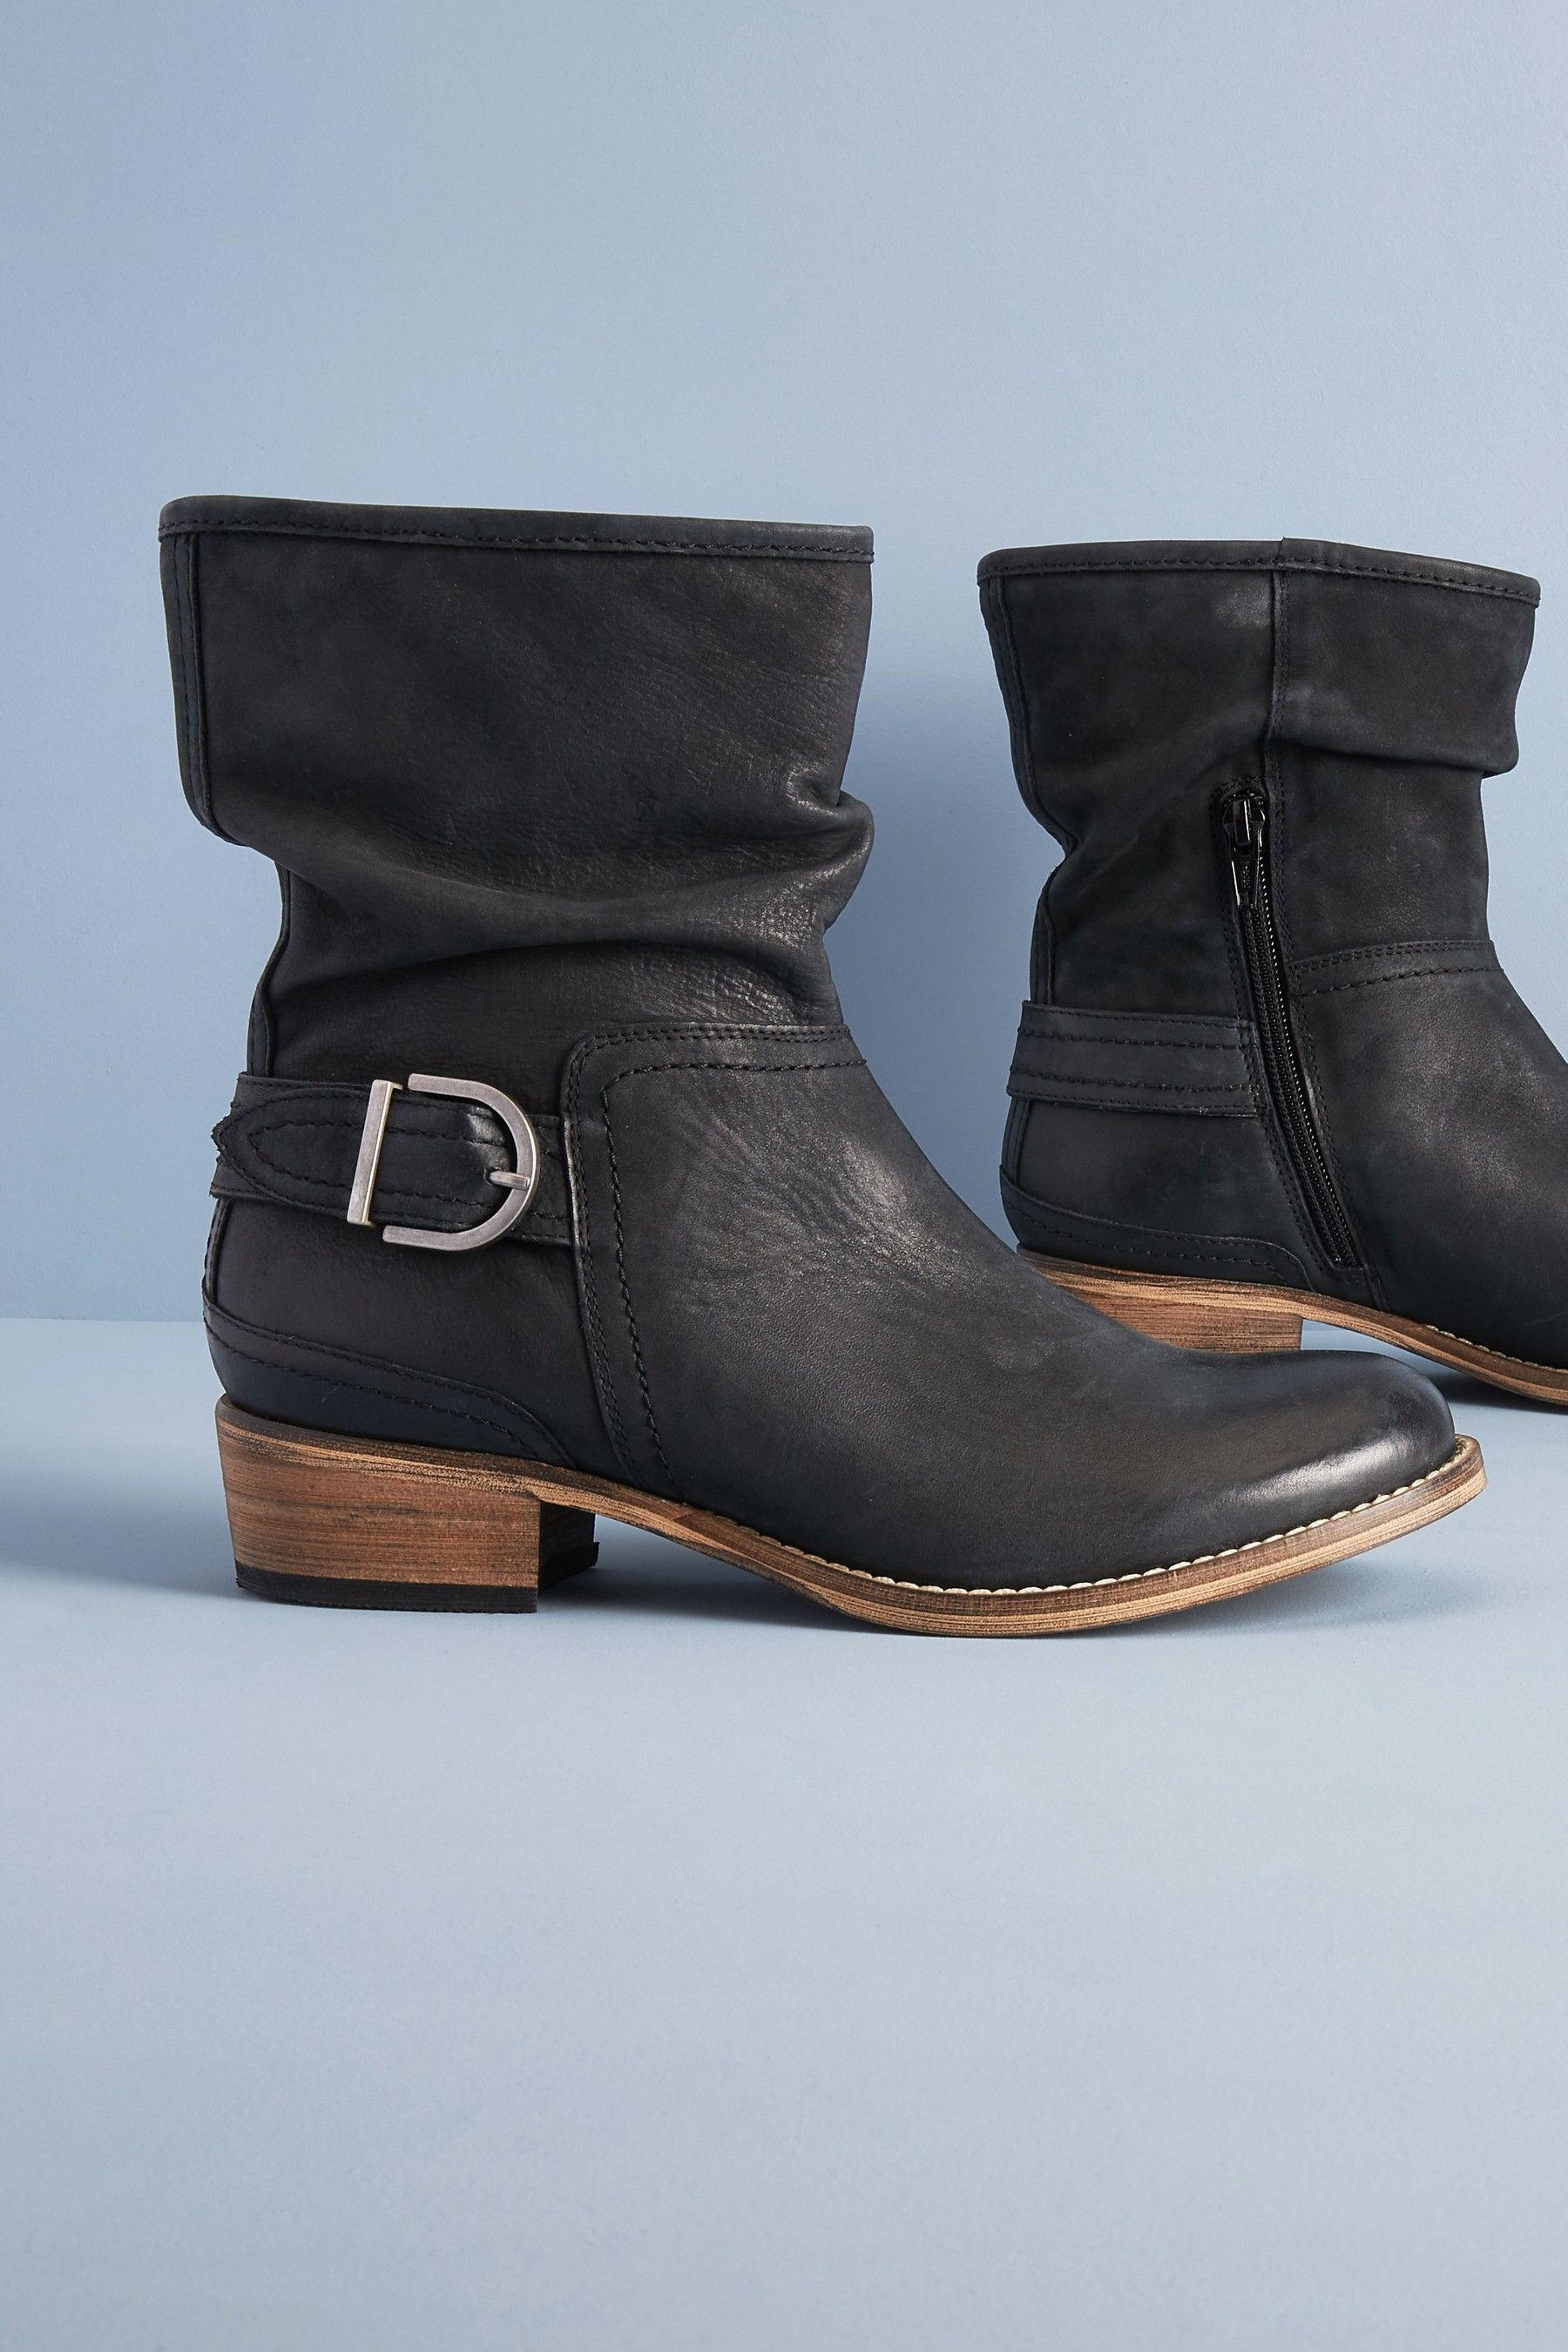 Slouch ankle boots, Boots, Black ankle